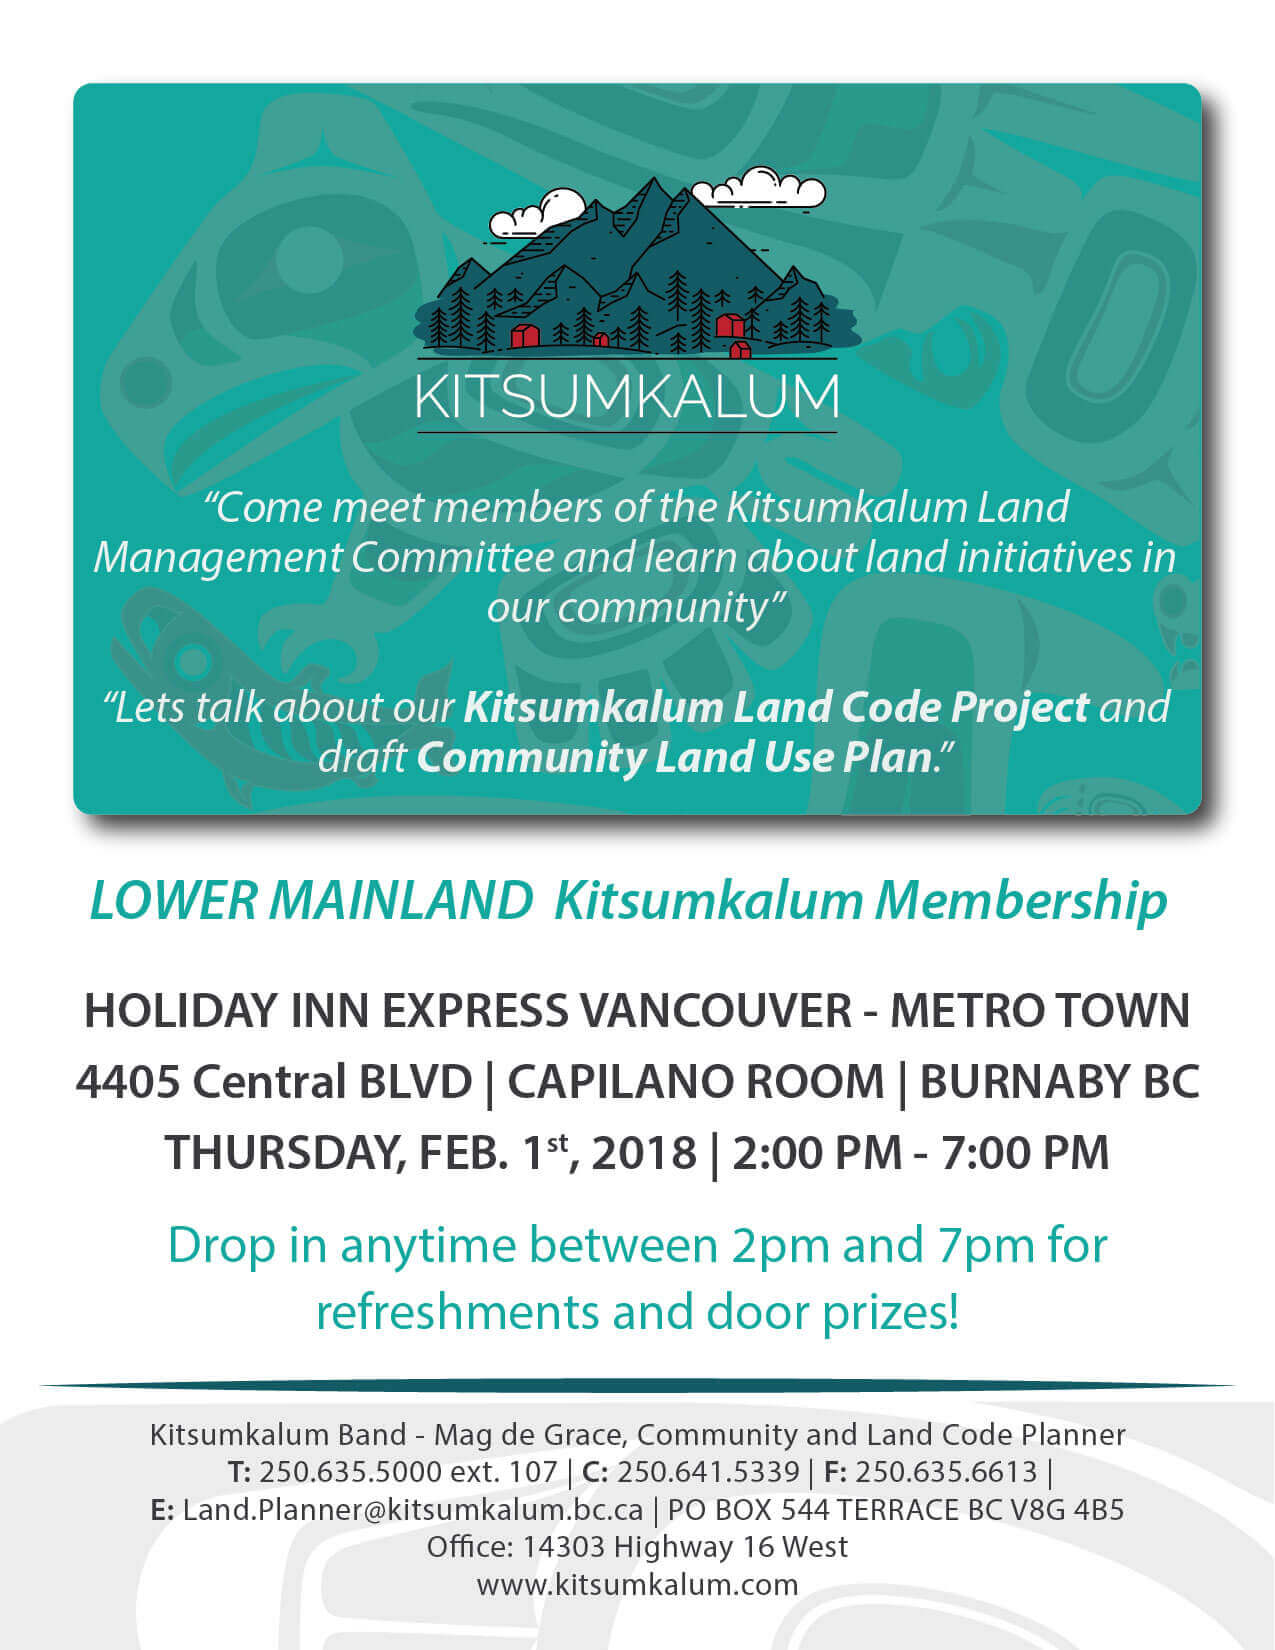 Lower Mainland Kalum Membership – Learn About Land Initiatives in Our Community